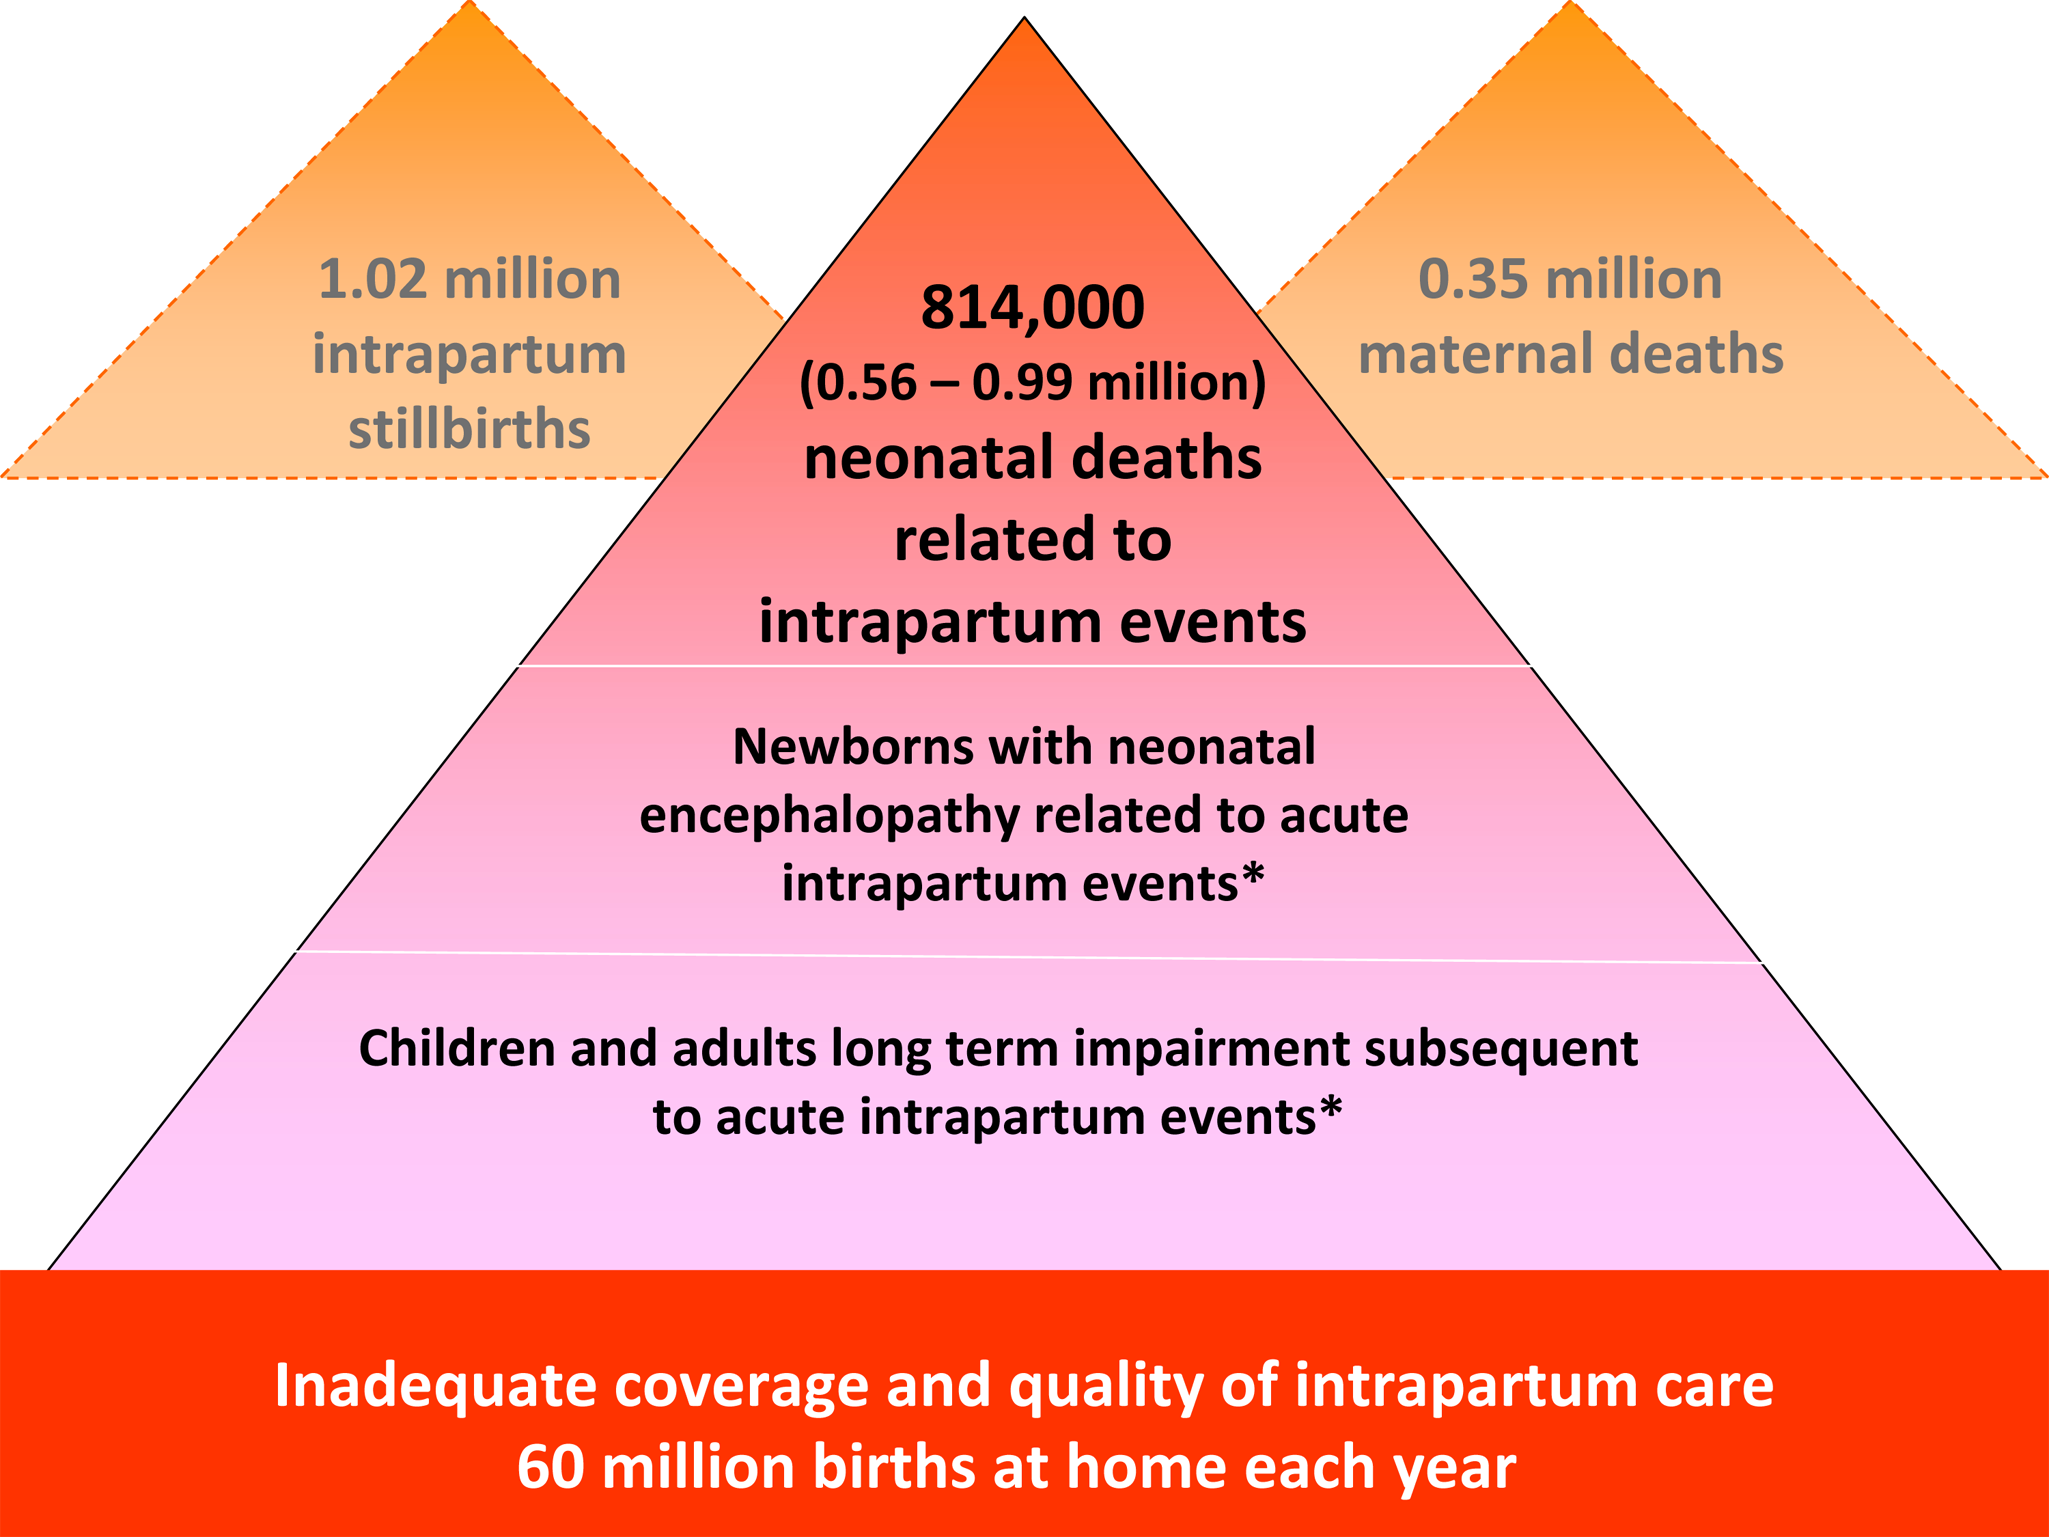 The burden of intrapartum-related neonatal deaths, intrapartum stillbirths, maternal deaths, and the unknown associated burden of neonatal morbidity and disability.